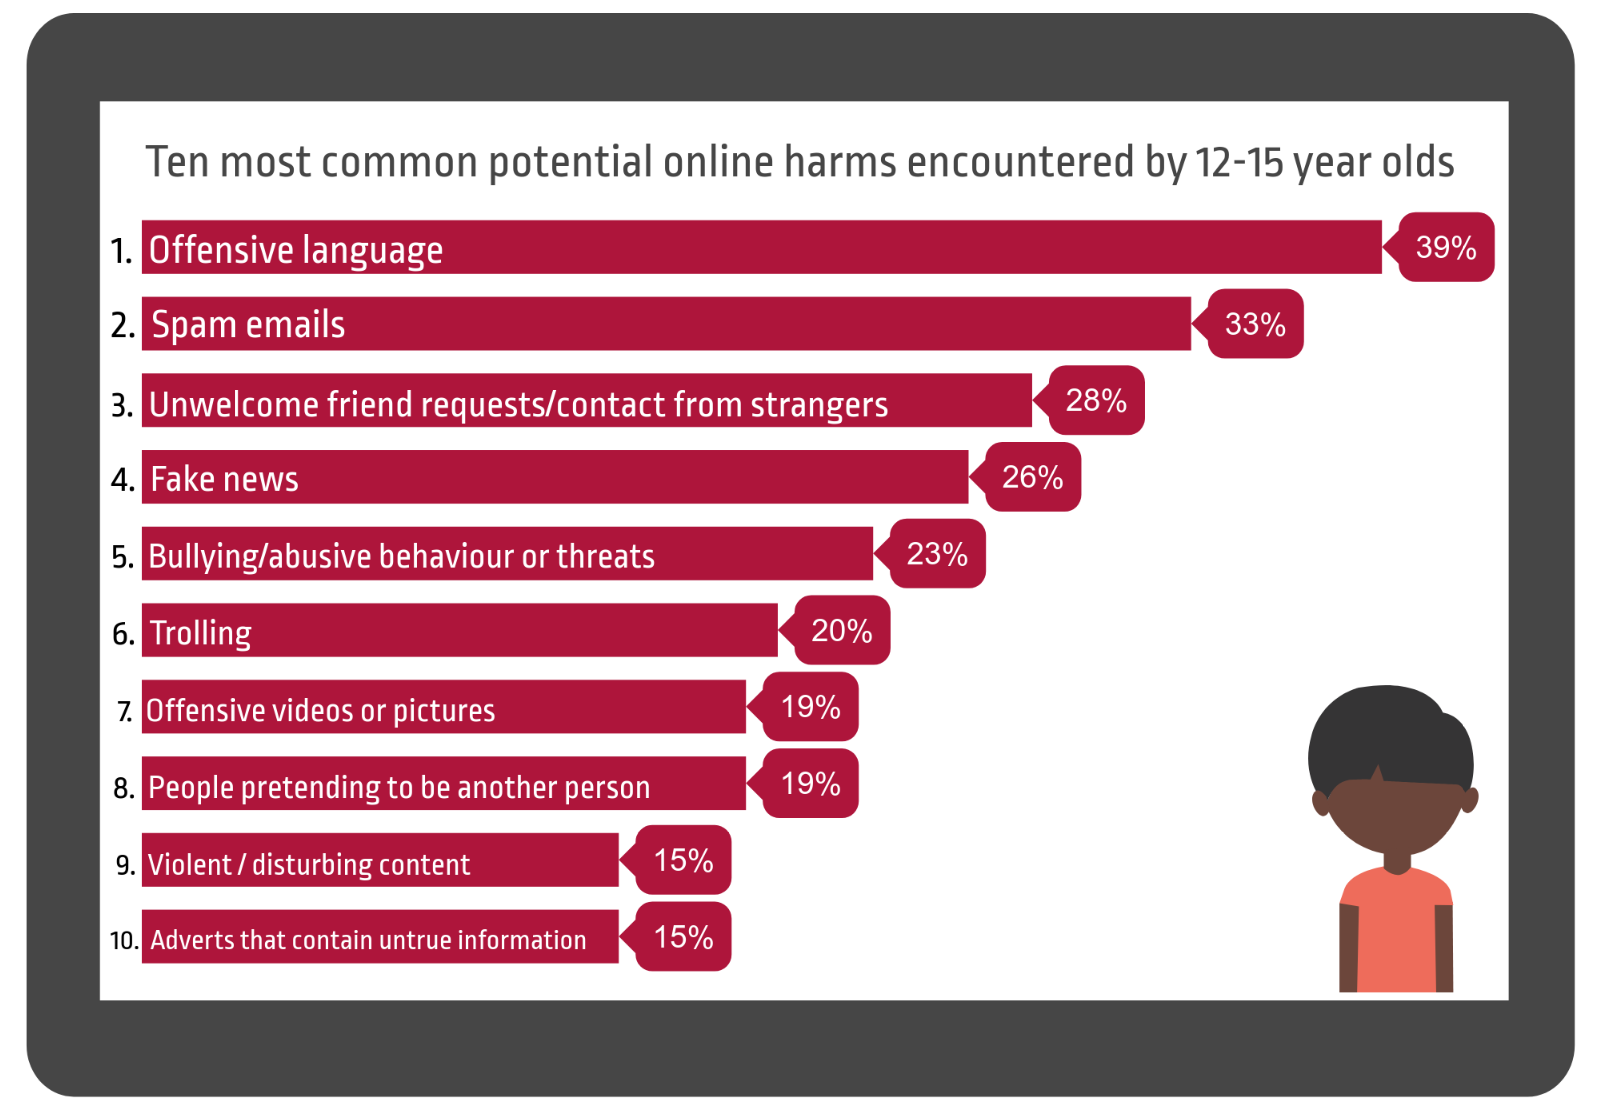 Offensive language is the most common potential online harm (39%) encountered by 12-15 year olds